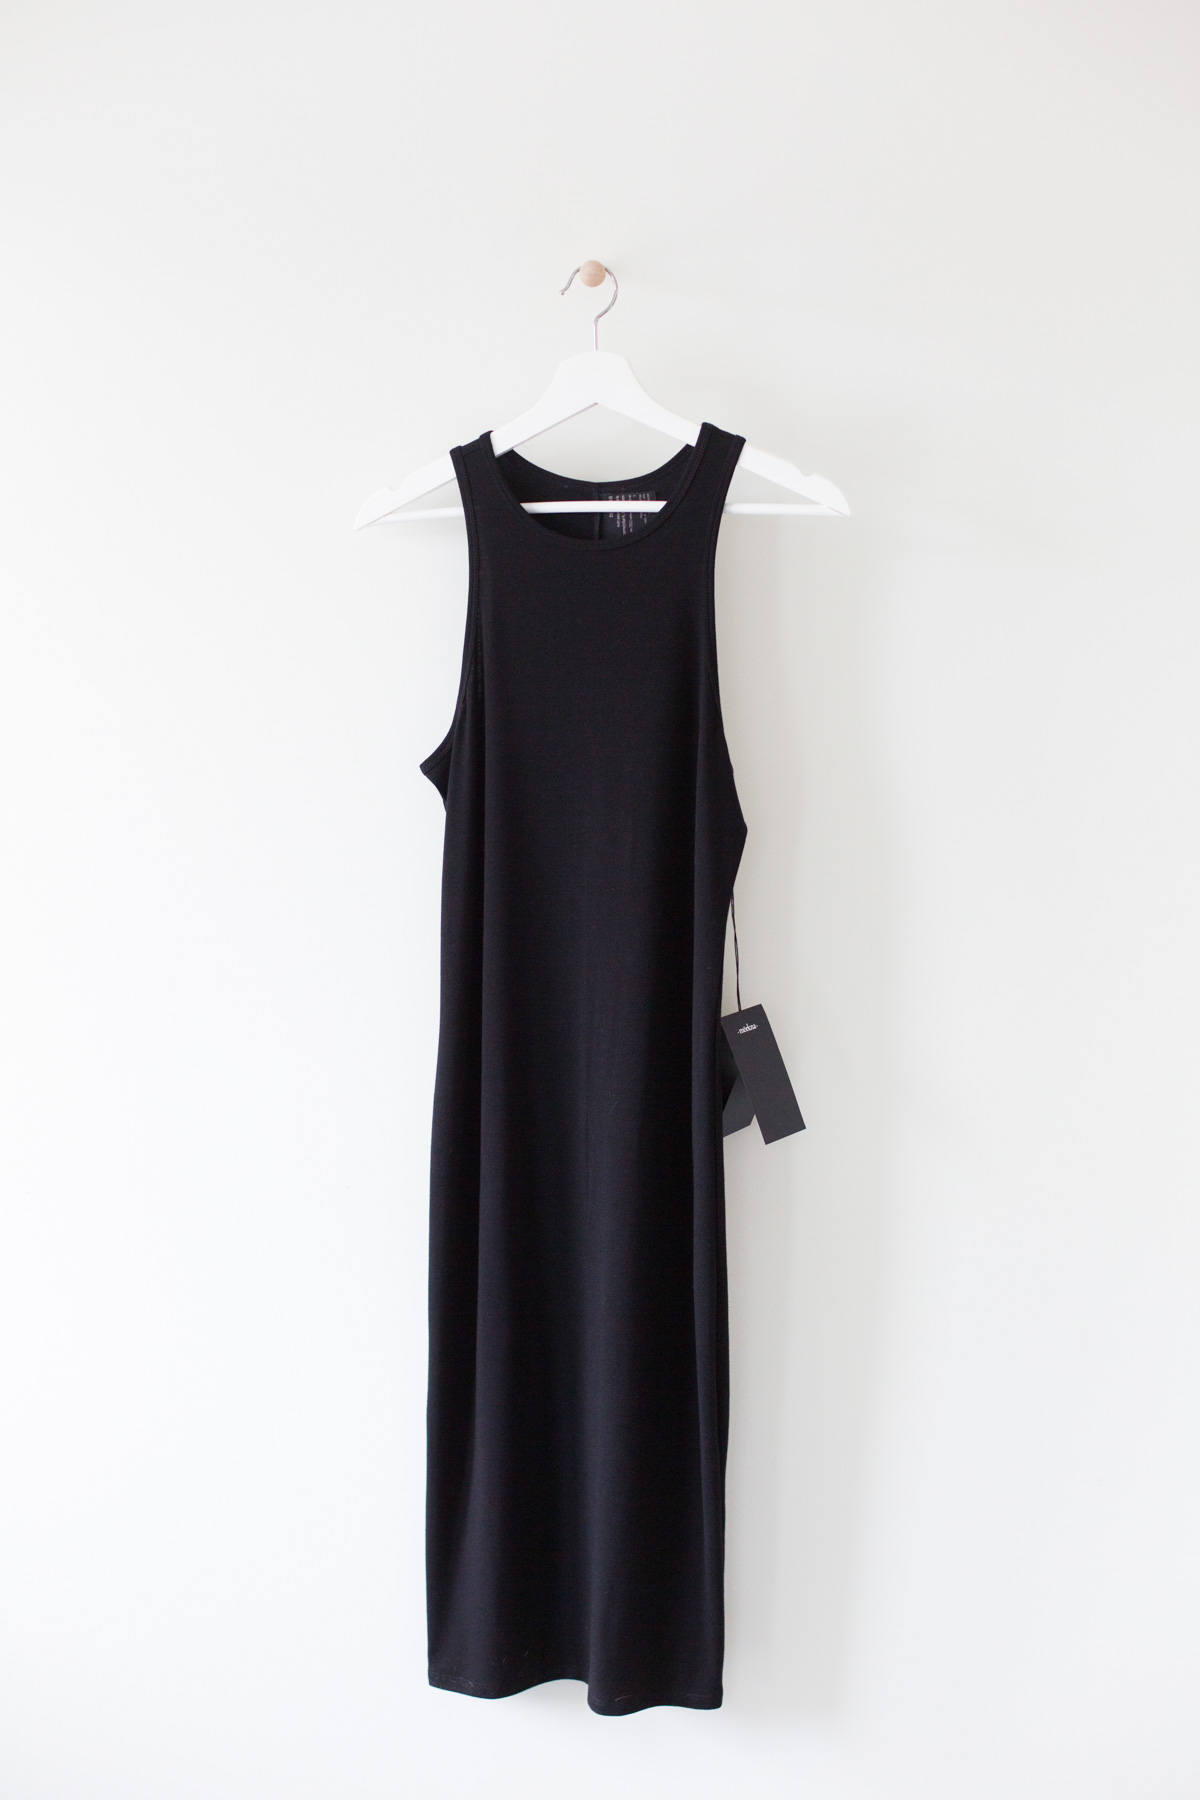 Arte Haus Collectif Black Knit Mid Dress